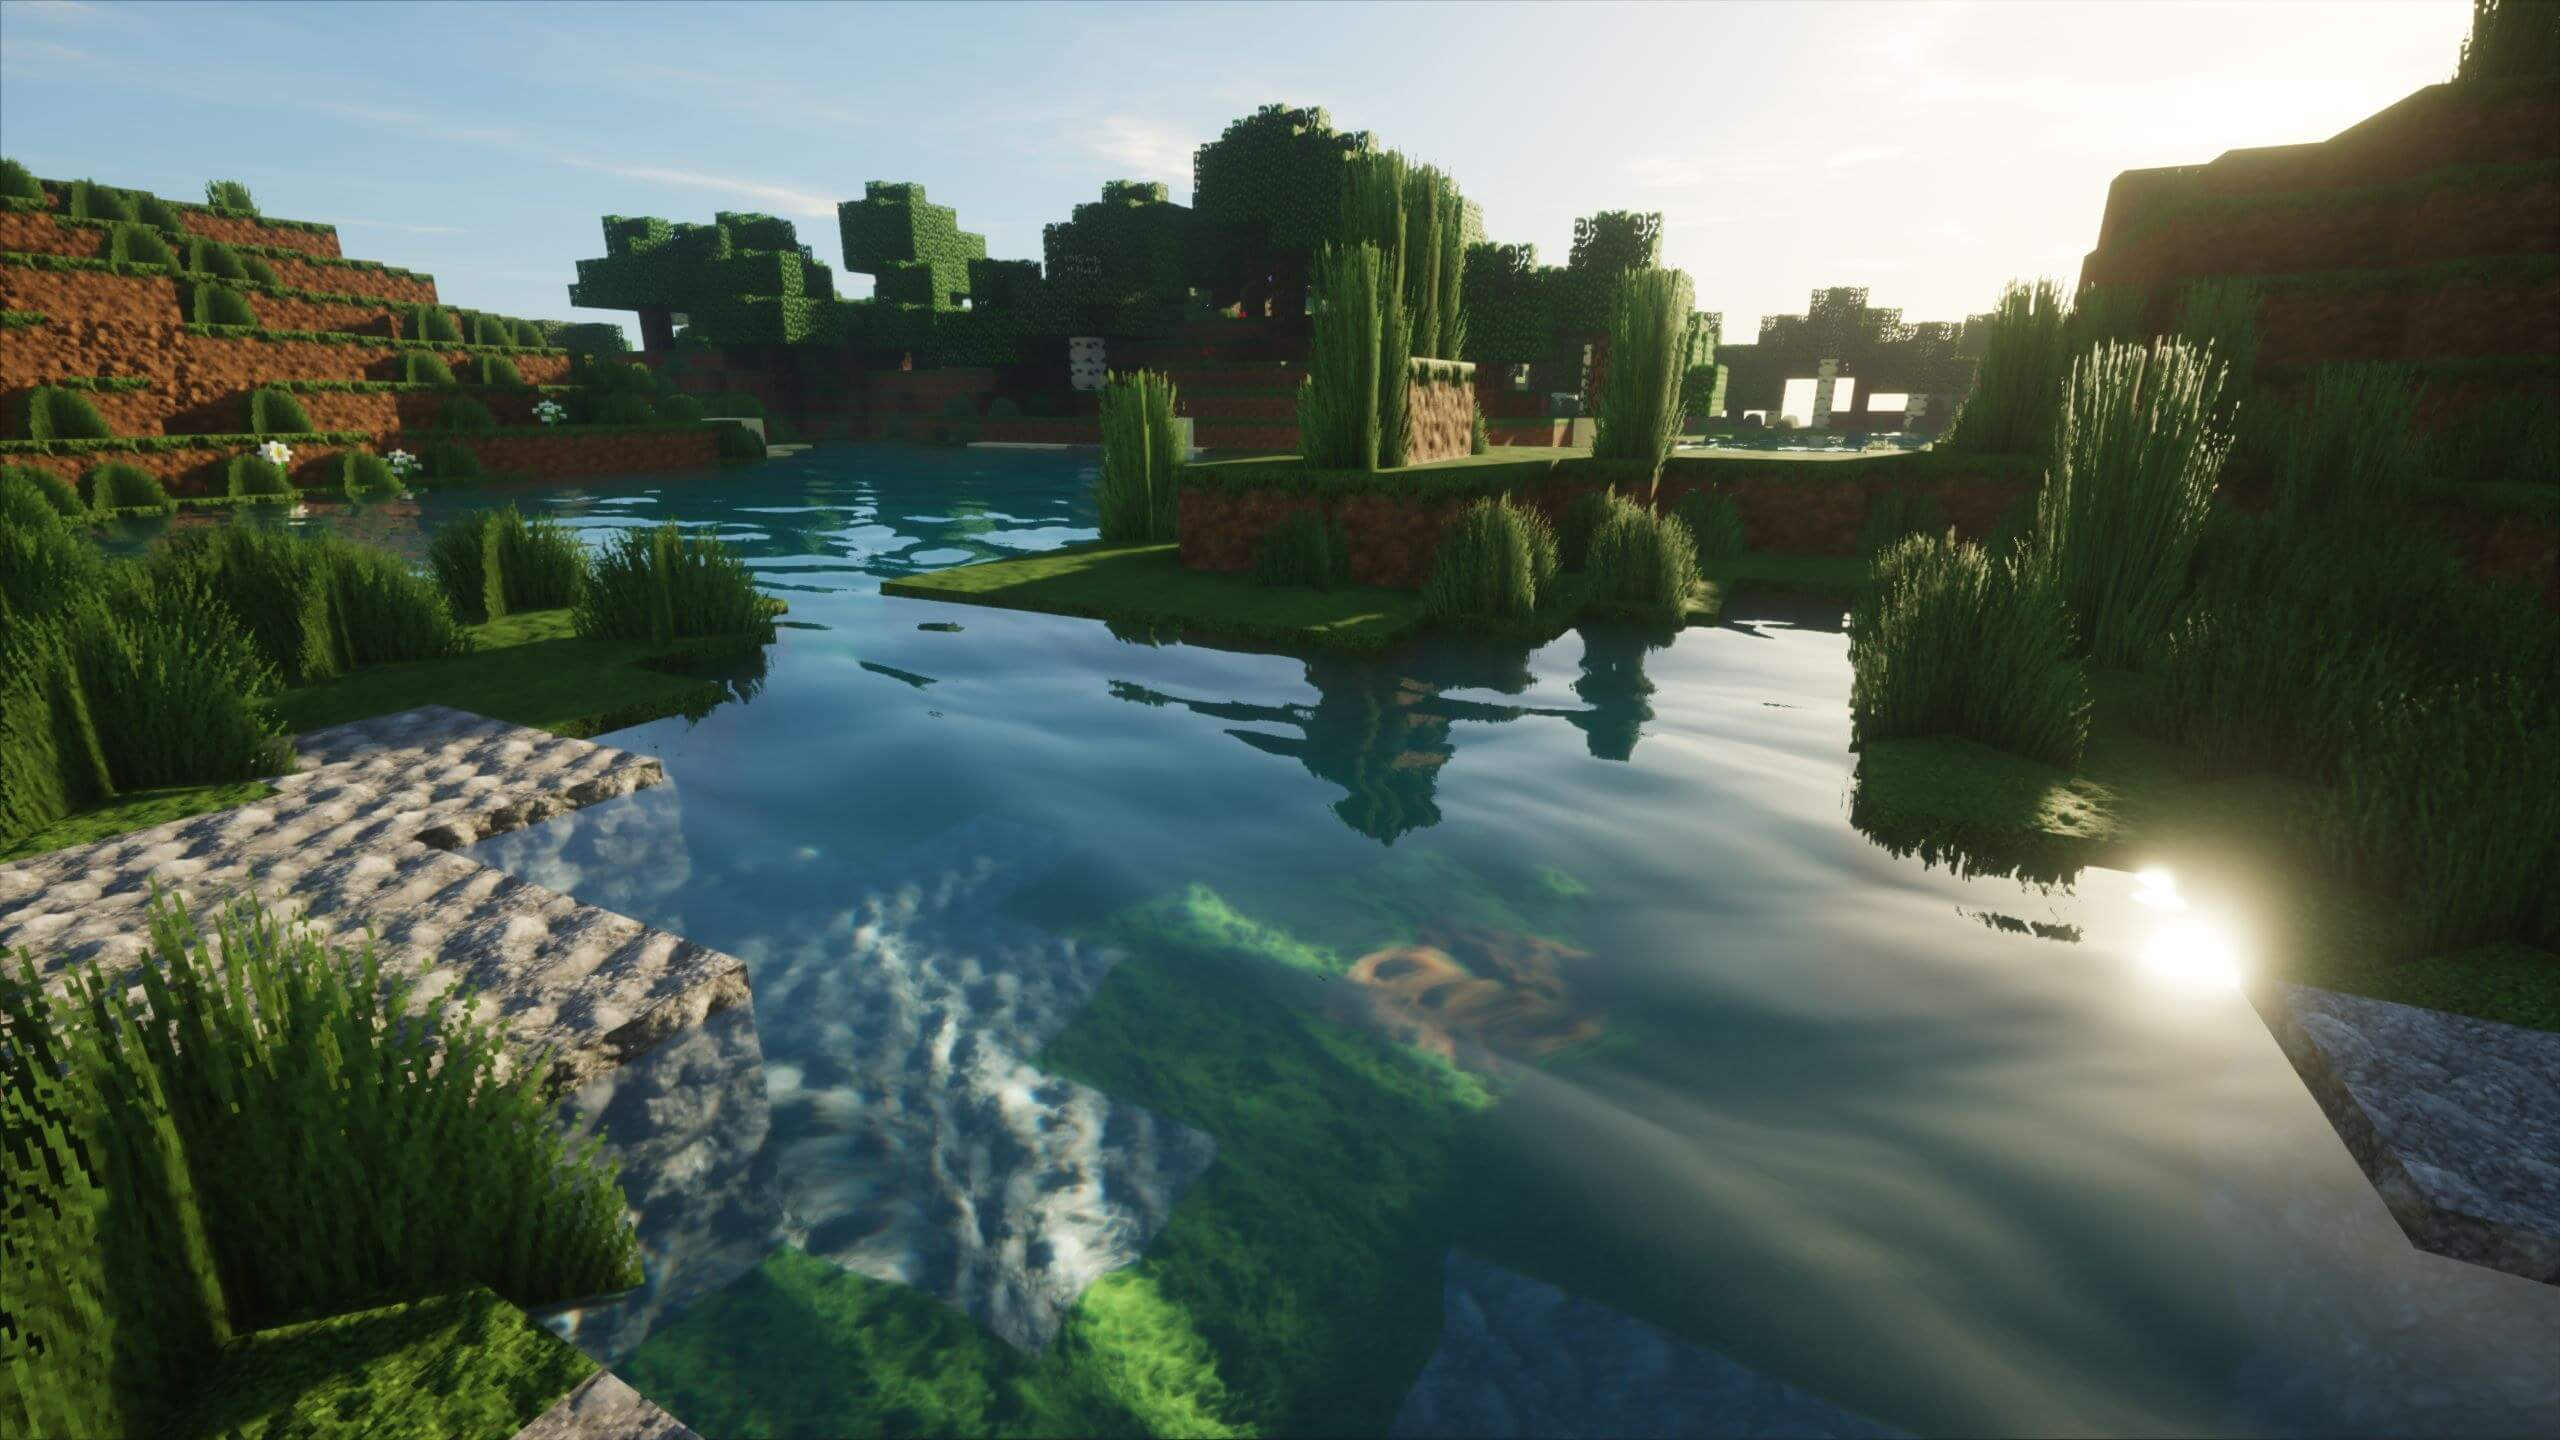 minecraft shaders texture pack 1.7.10 download